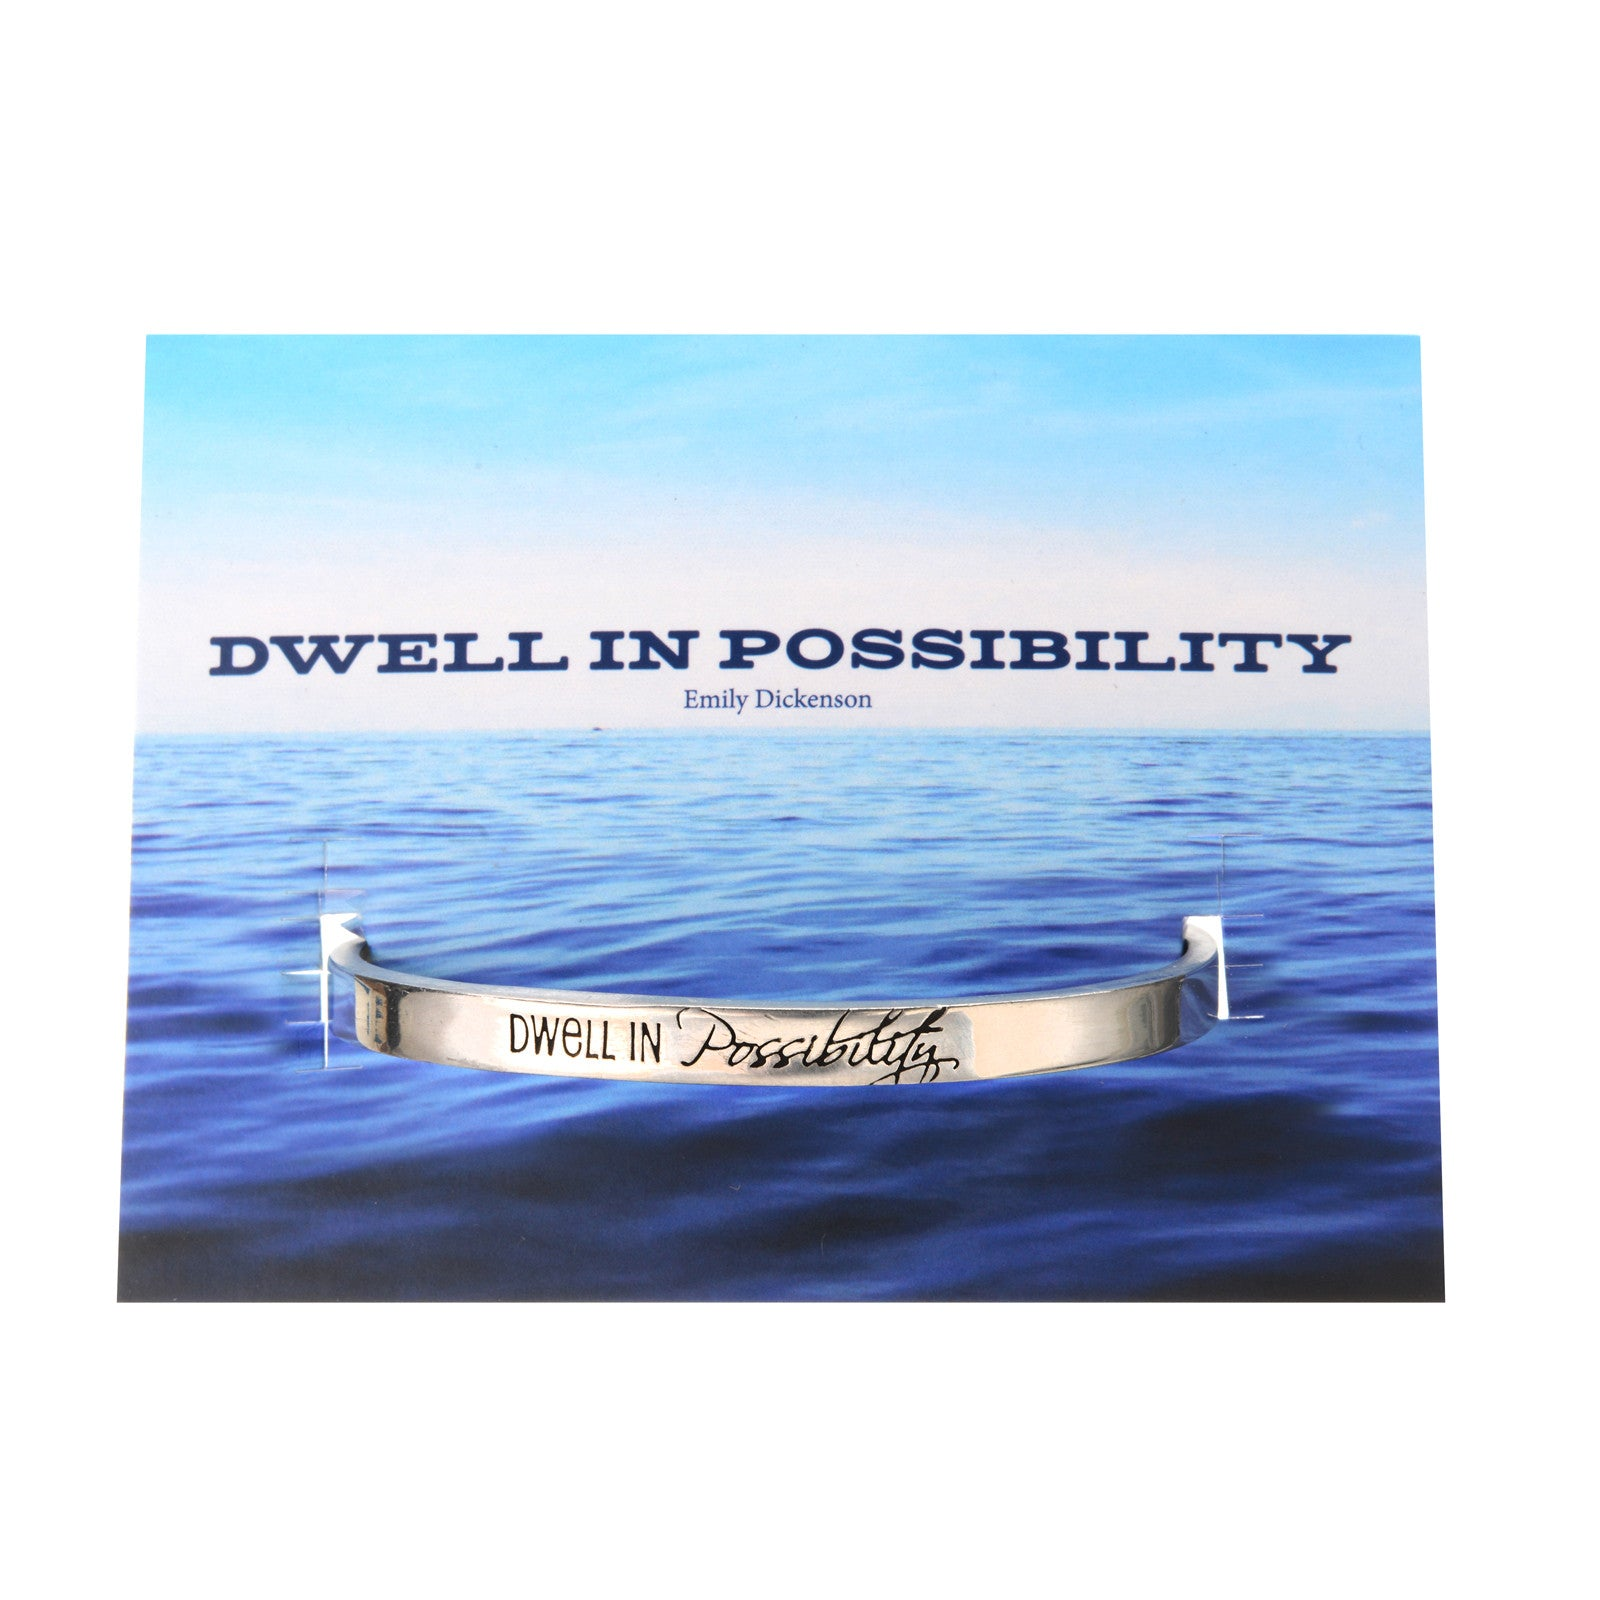 Dwell in Possibility Emily Dickenson Quotable Cuff Bracelet - Whitney Howard Designs